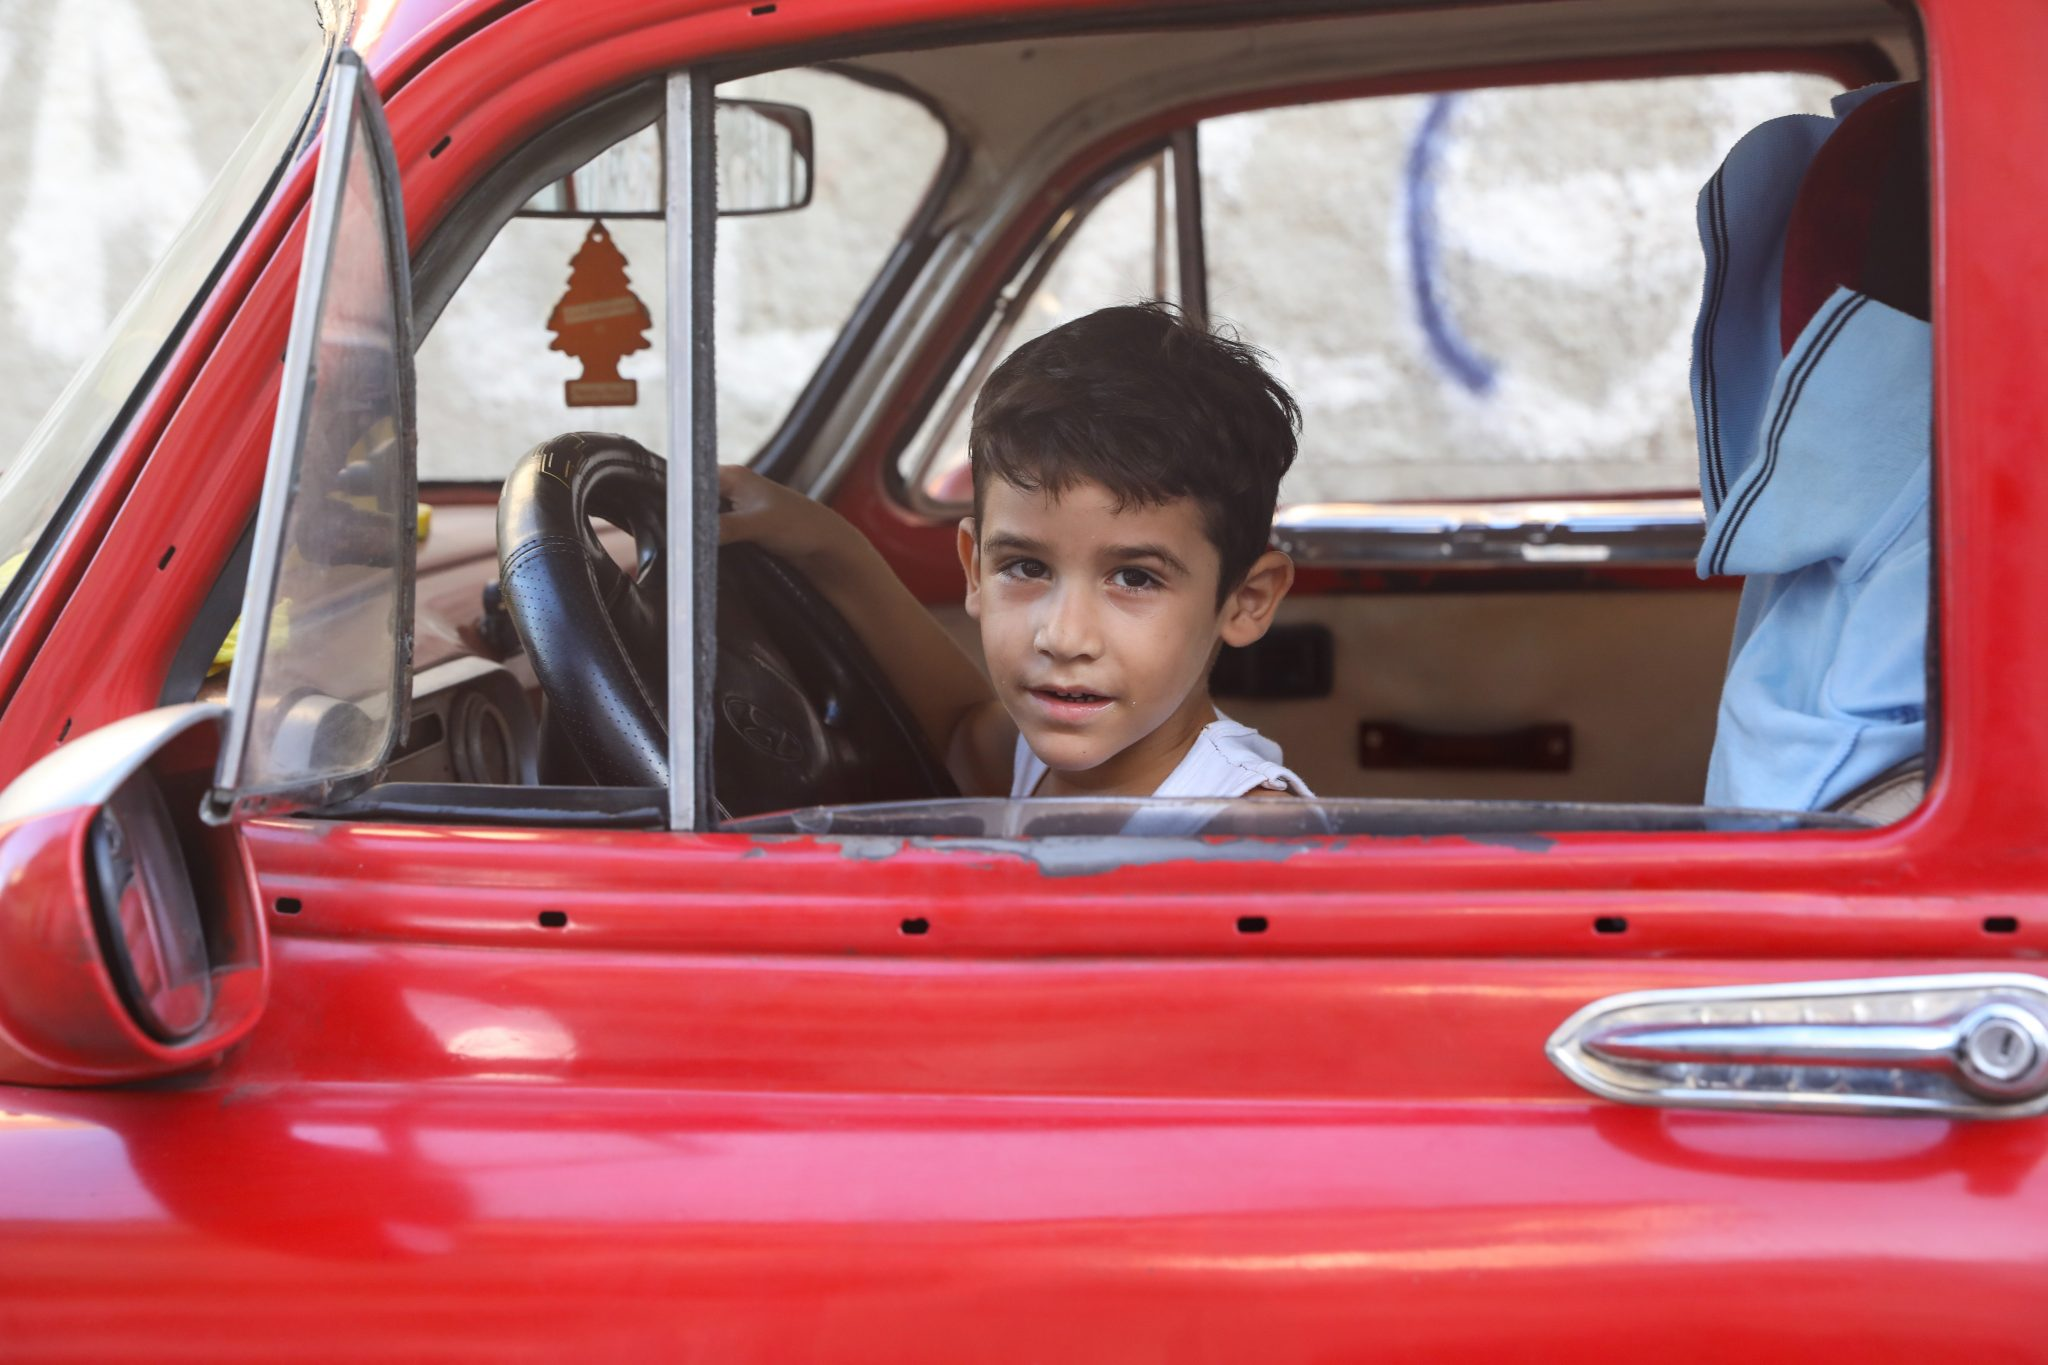 A boy in a red car in Central Havana. Photography by Luke Galati/2016